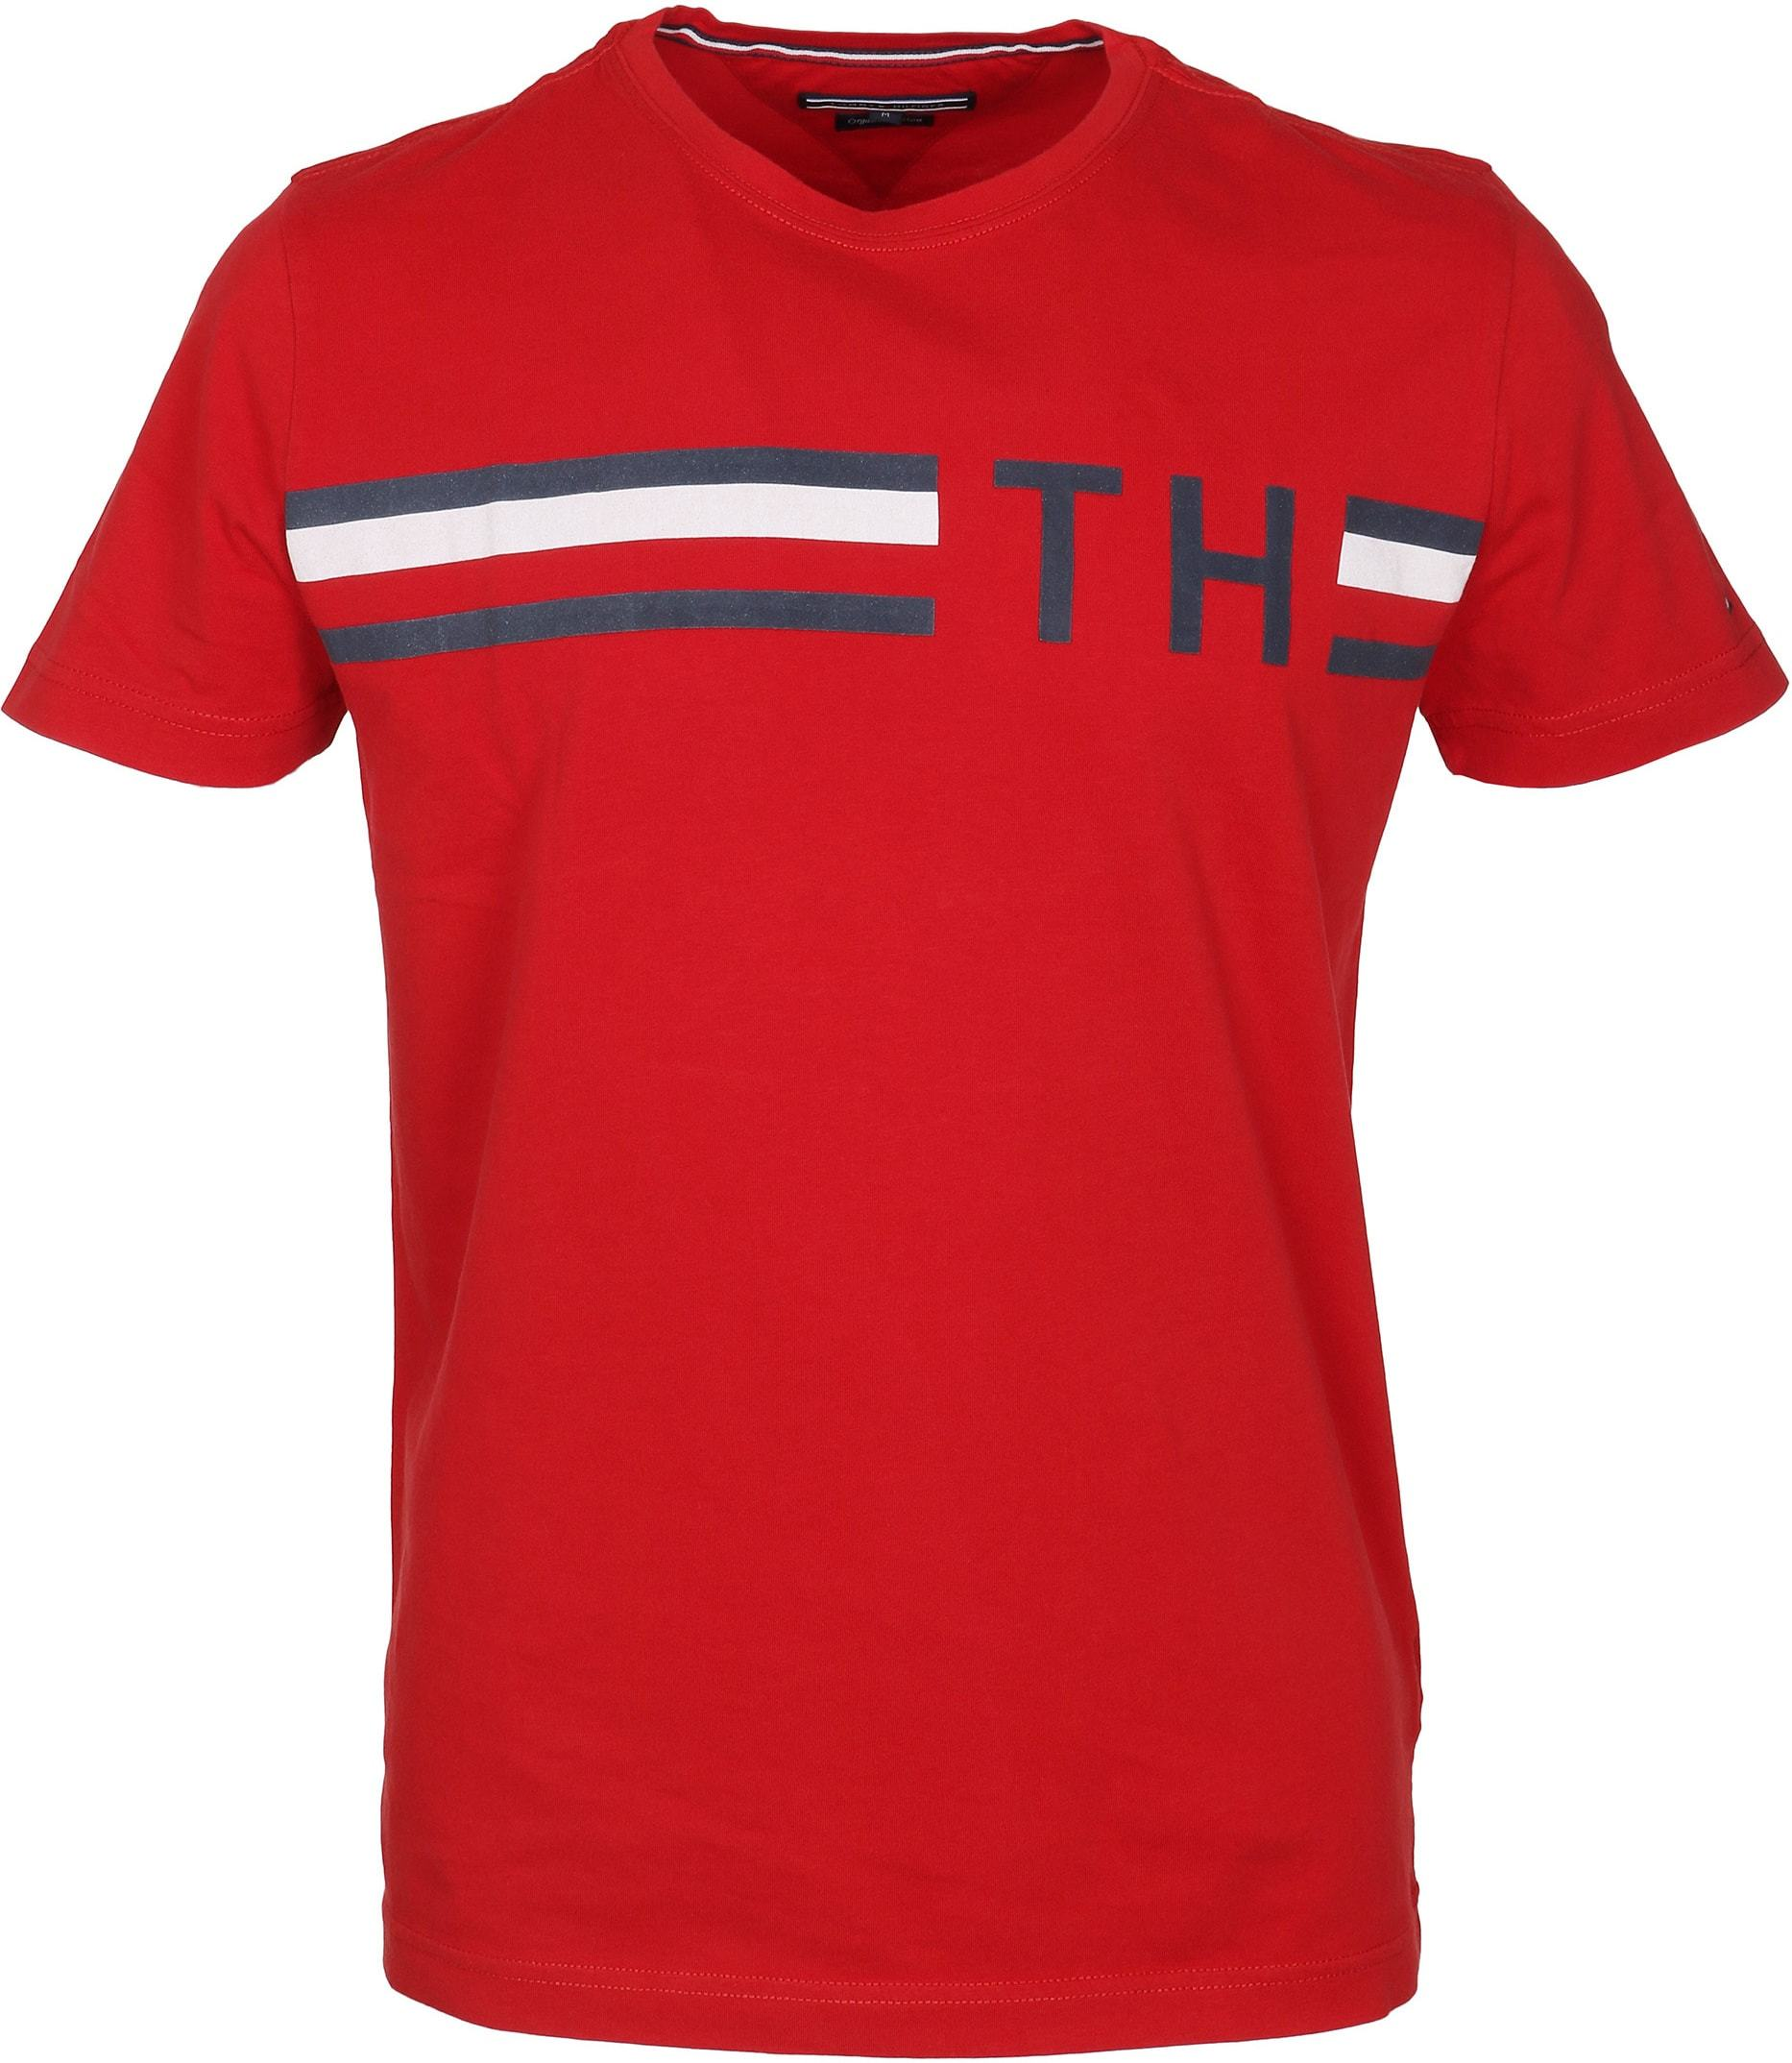 Tommy Hilfiger T-shirt TH Rood foto 0